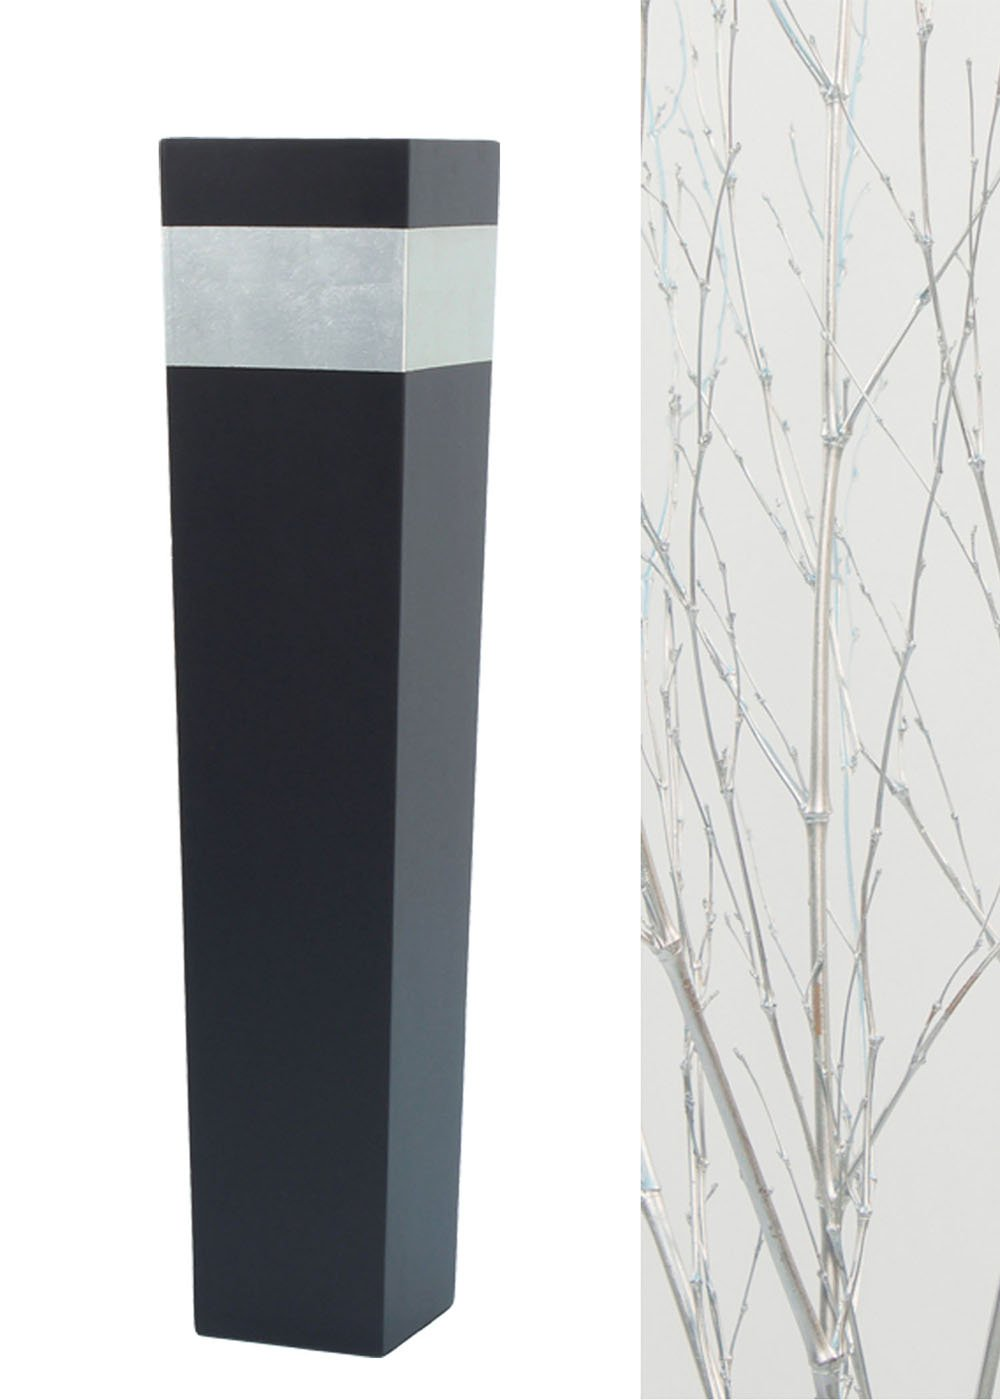 Green Floral Crafts 36'' Tapered Tall Black Floor Vase - Silver Accent & DIY Branches Kit